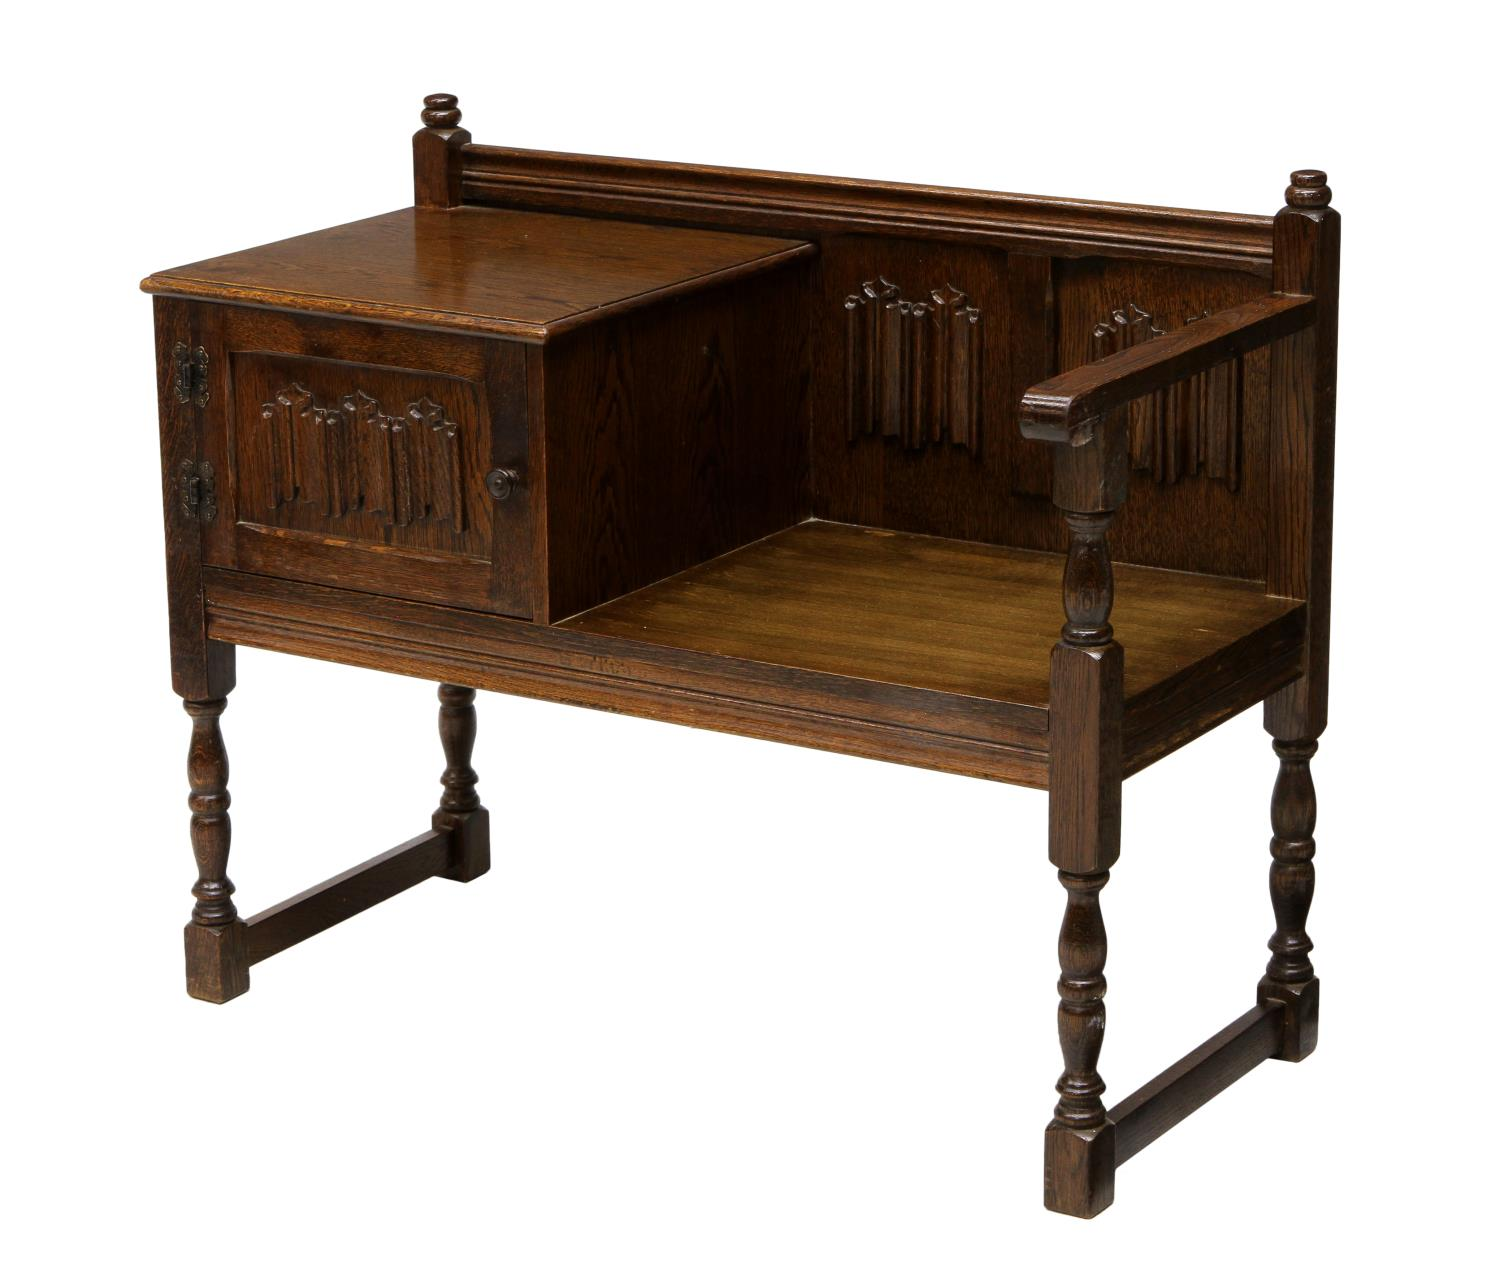 Oak Telephone Or Conversation Bench Spring Two Day Estates Auction Day One Austin Auction